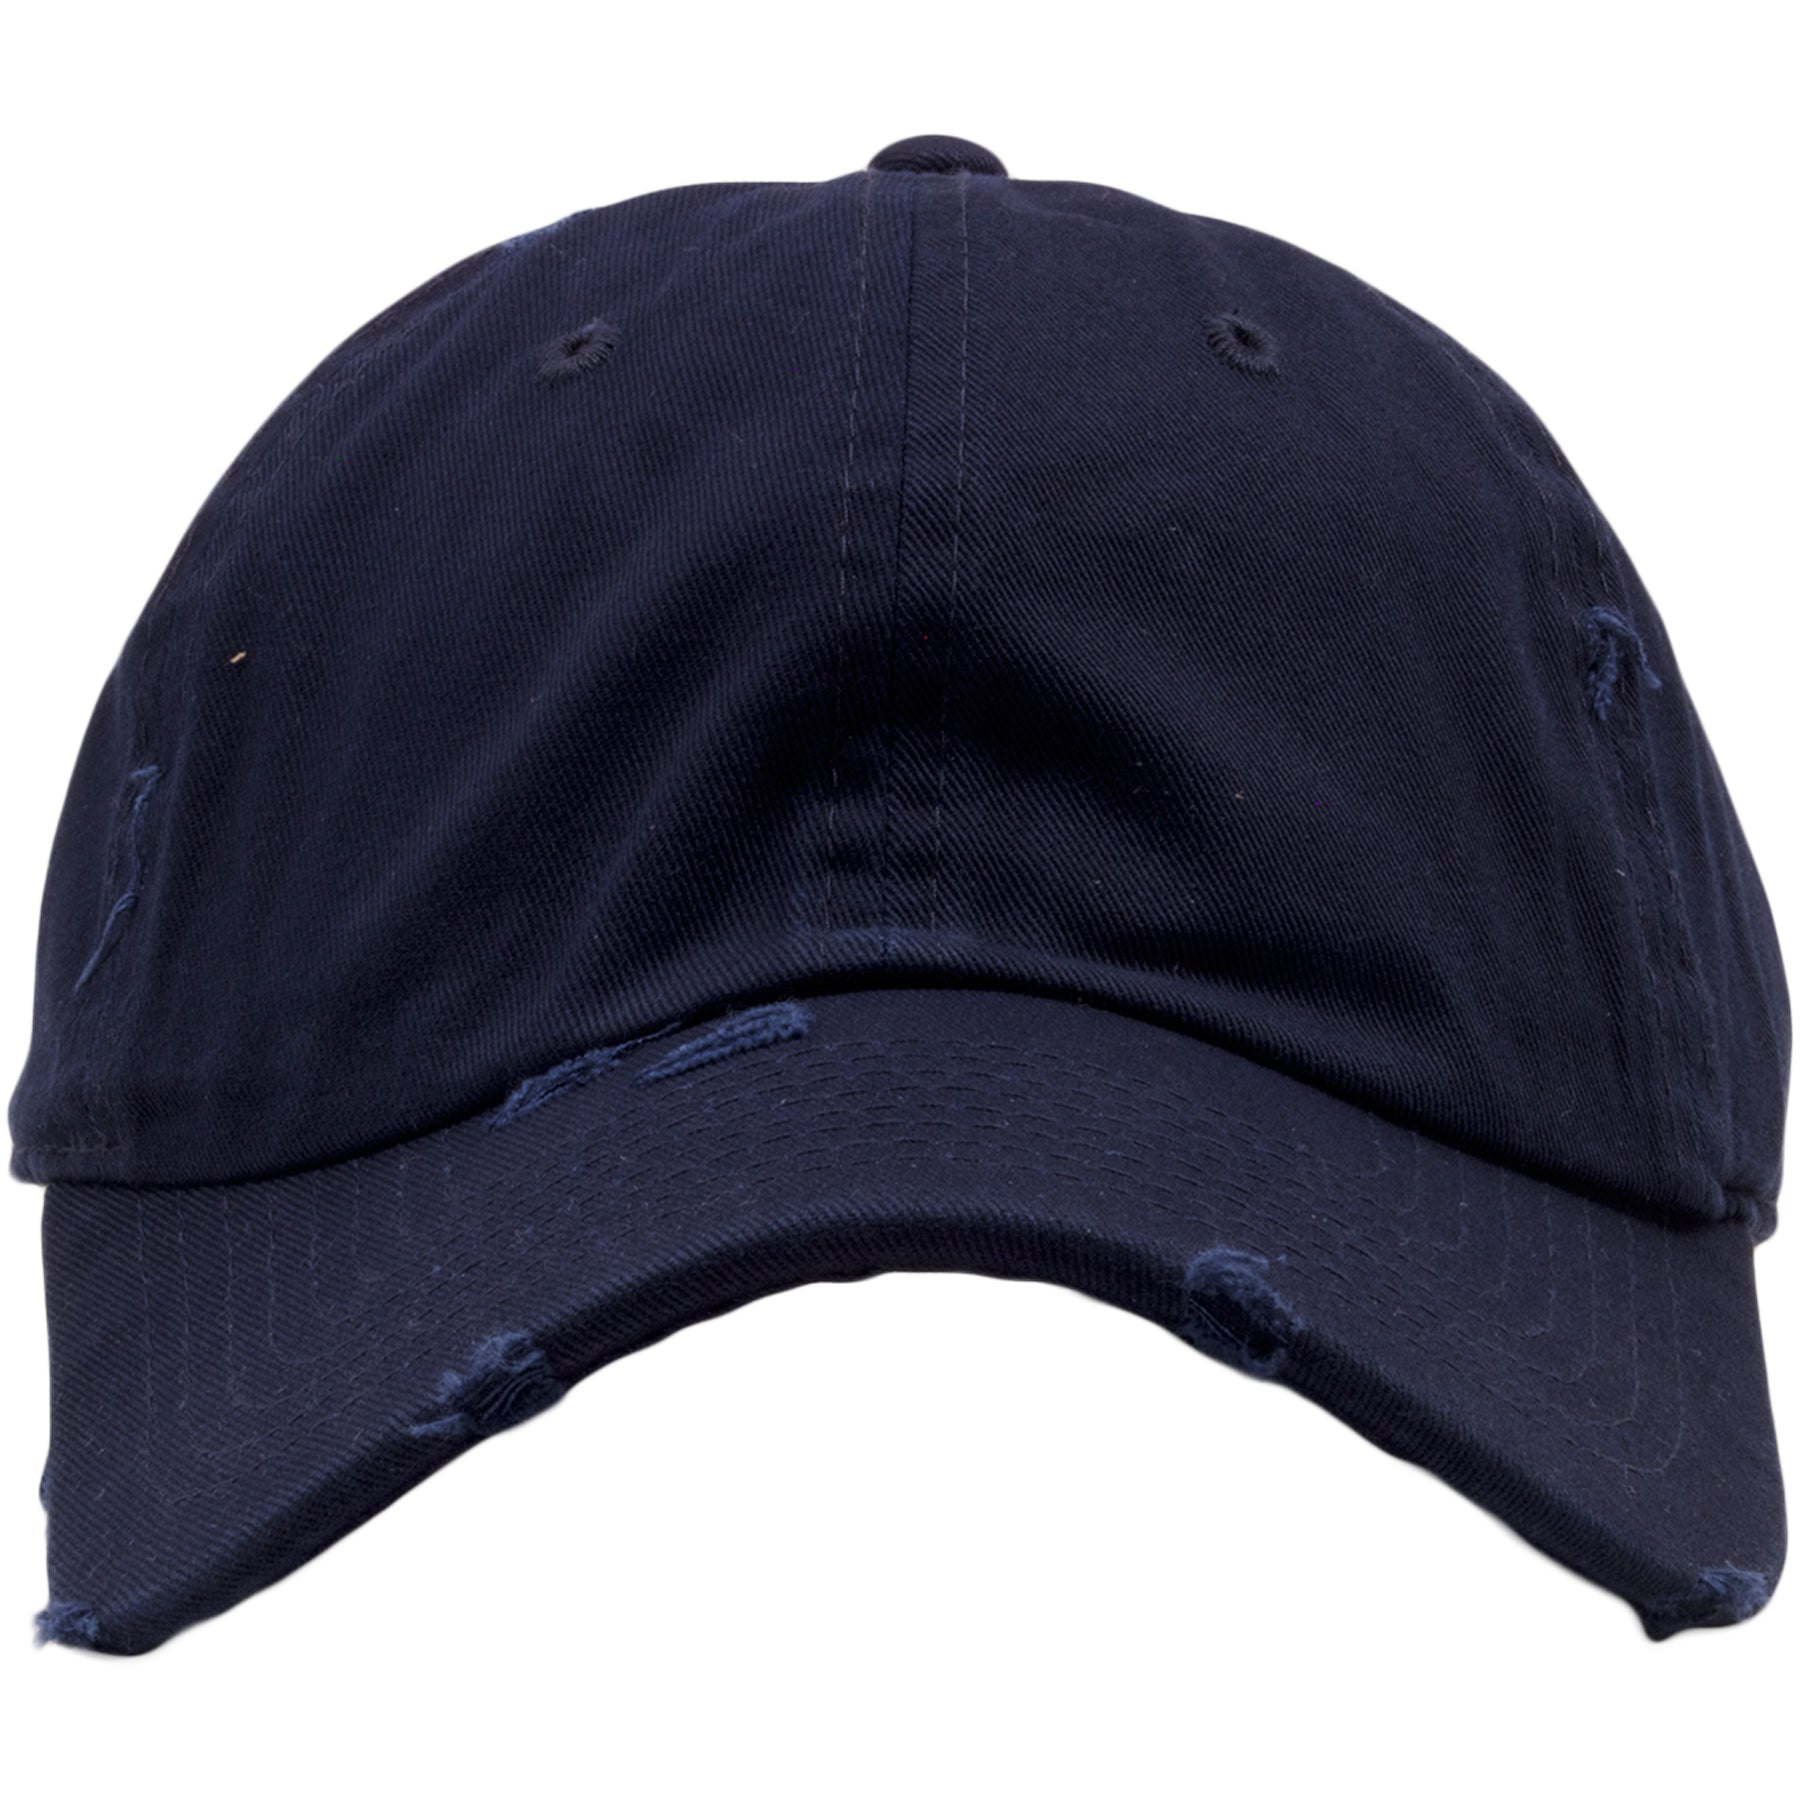 ed2835ba The navy blue blank distressed dad hat from Foot Clan is solid navy blue  with a